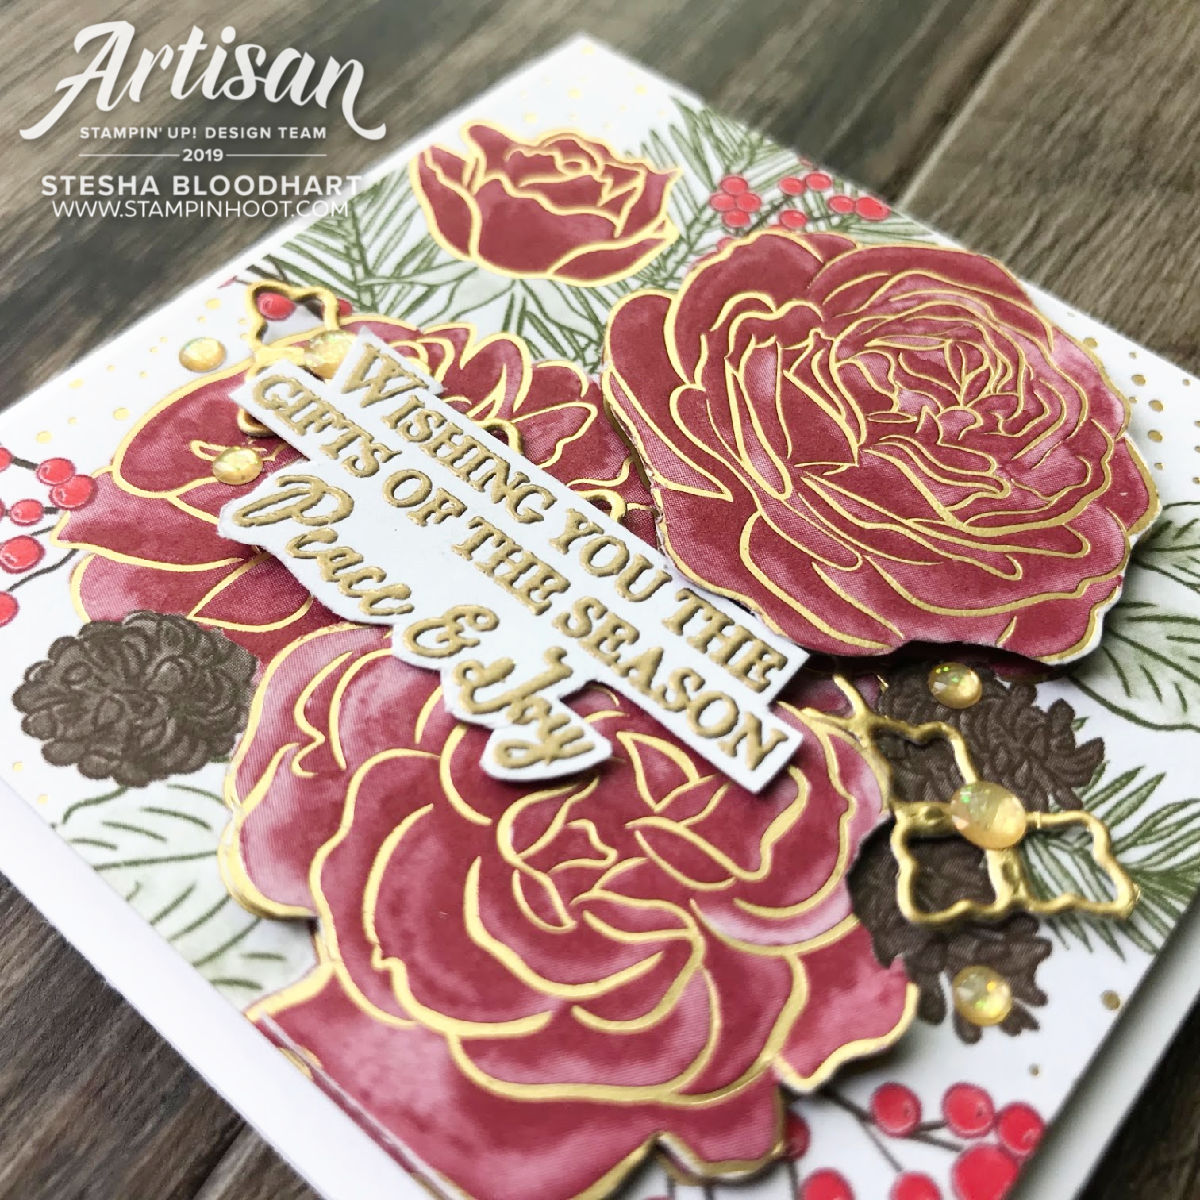 Christmastime is Here Suite by Stesha Bloodhart - 2019 Artisan Blog Hop - Stesha Bloodhart, Stampin' Hoot!